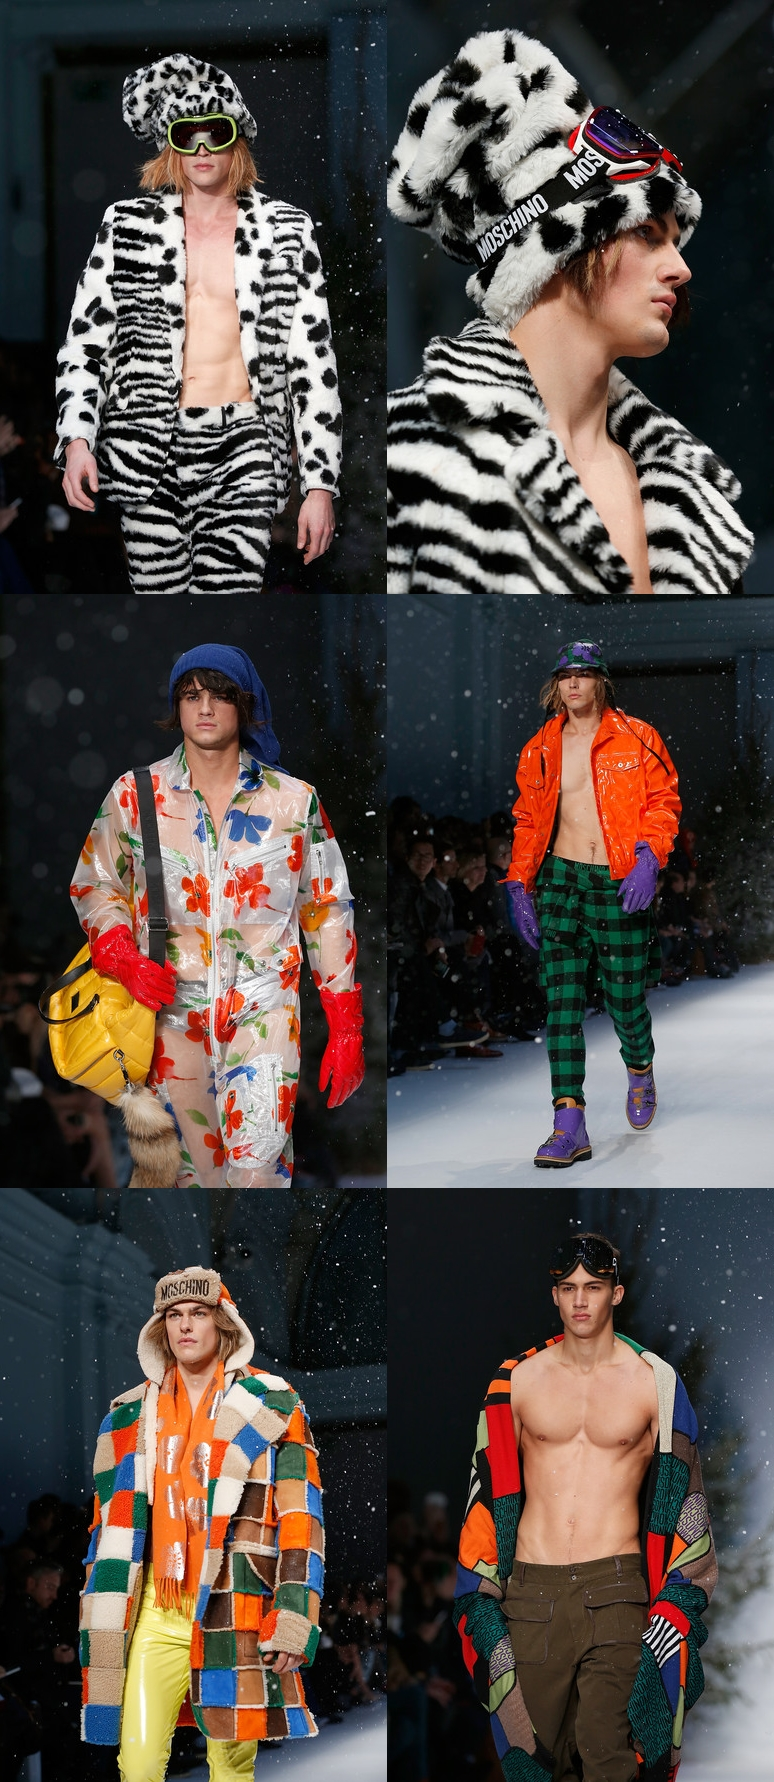 Moschino+Runway+London+Collections+Men+AW15+alex cursino, fashion blogger, moda sem censura, tendencia masculina, estilo masculino, moda masculina, fashion blogger, blogger,